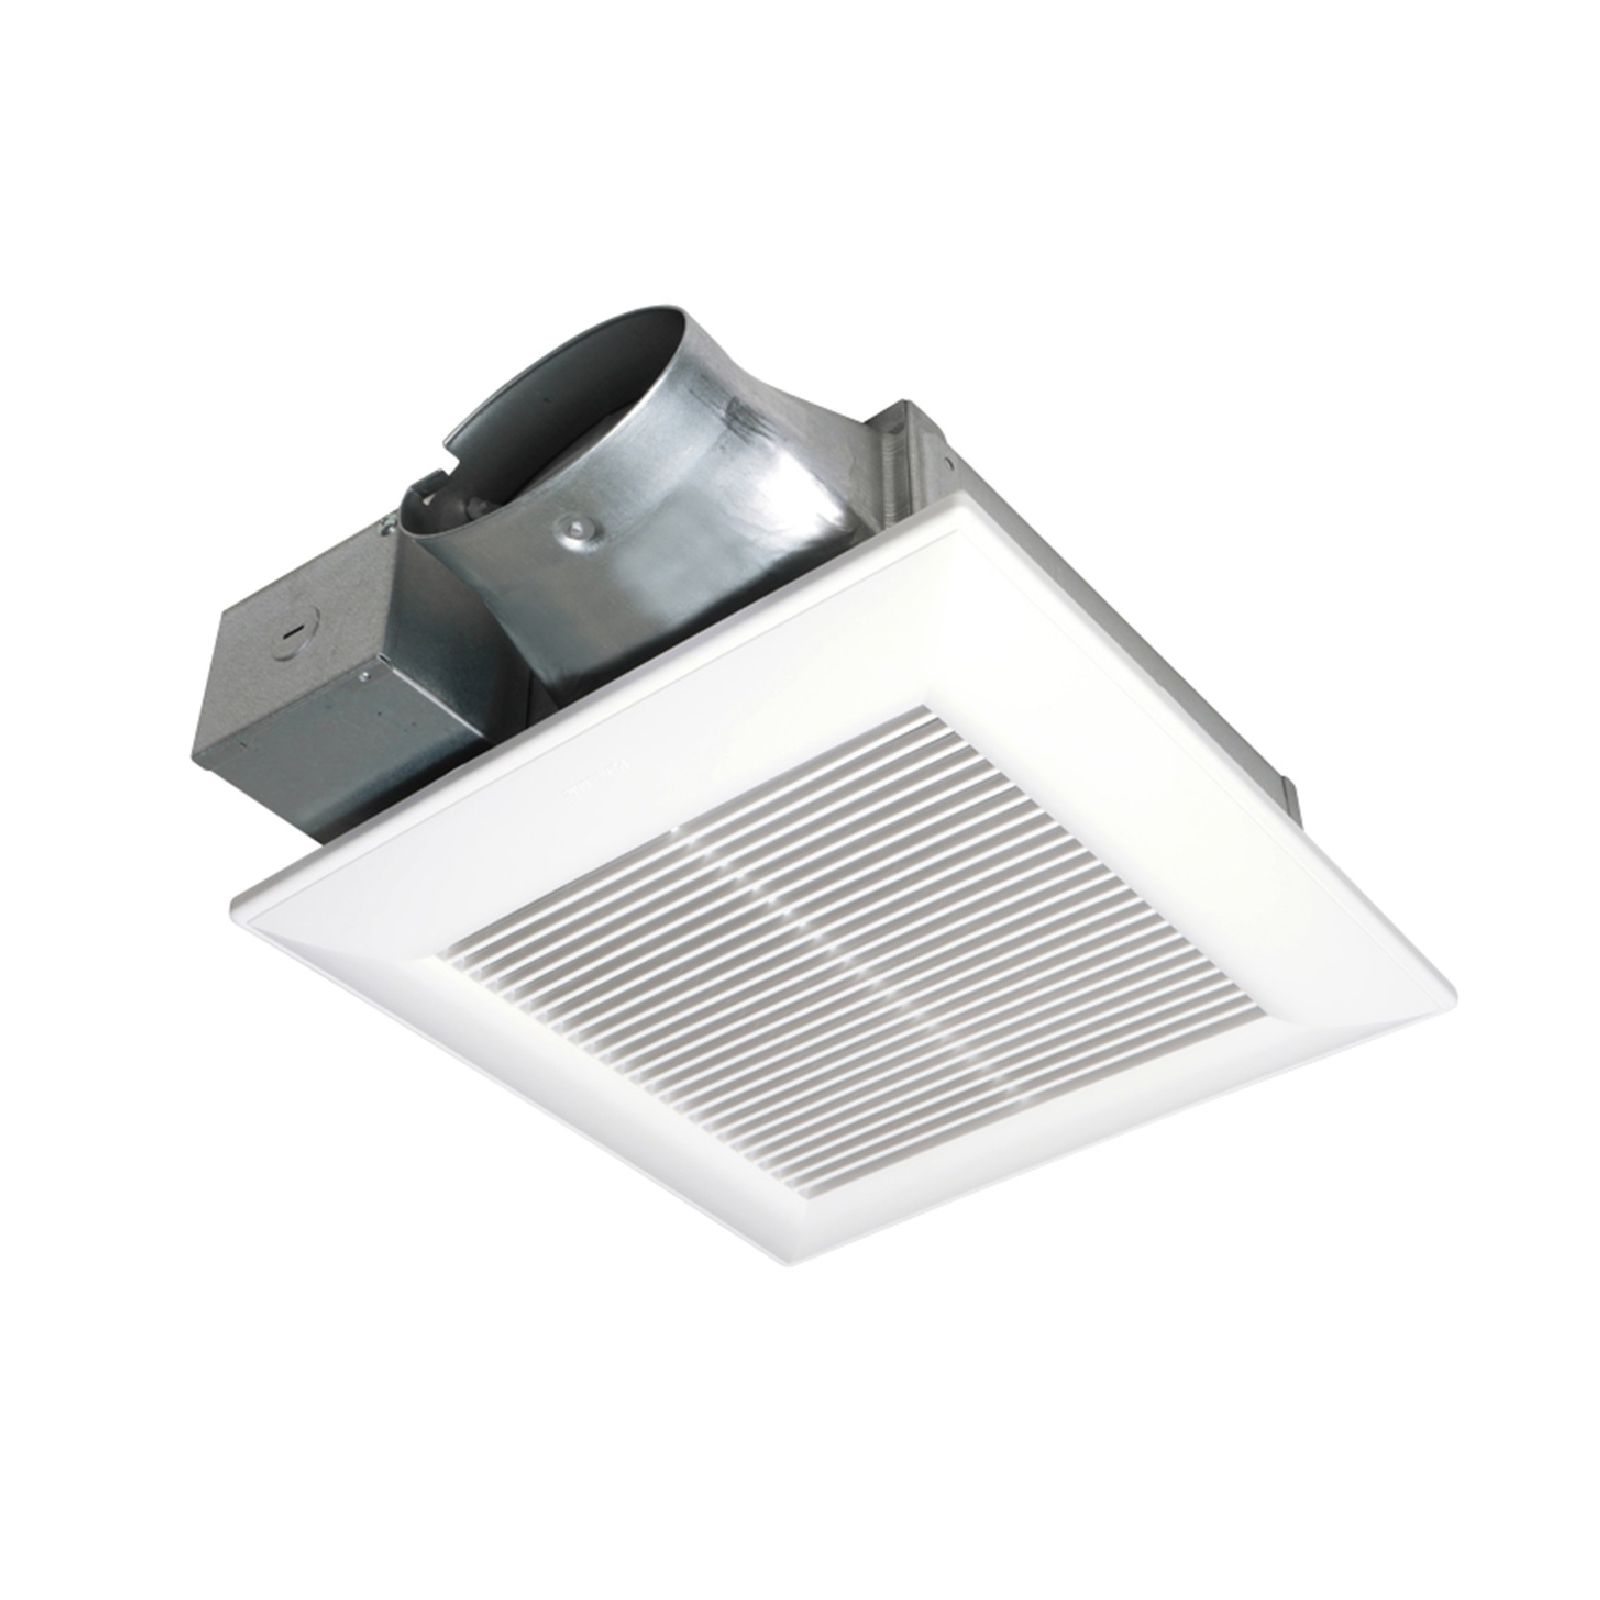 "Panasonic FV-08VS3 - Whisper value Fan, 80 CFM, 1.4 Sone, 3-3/8"" Depth, Includes (2)13W Self-Ballasted GU24 Base CFL'S."